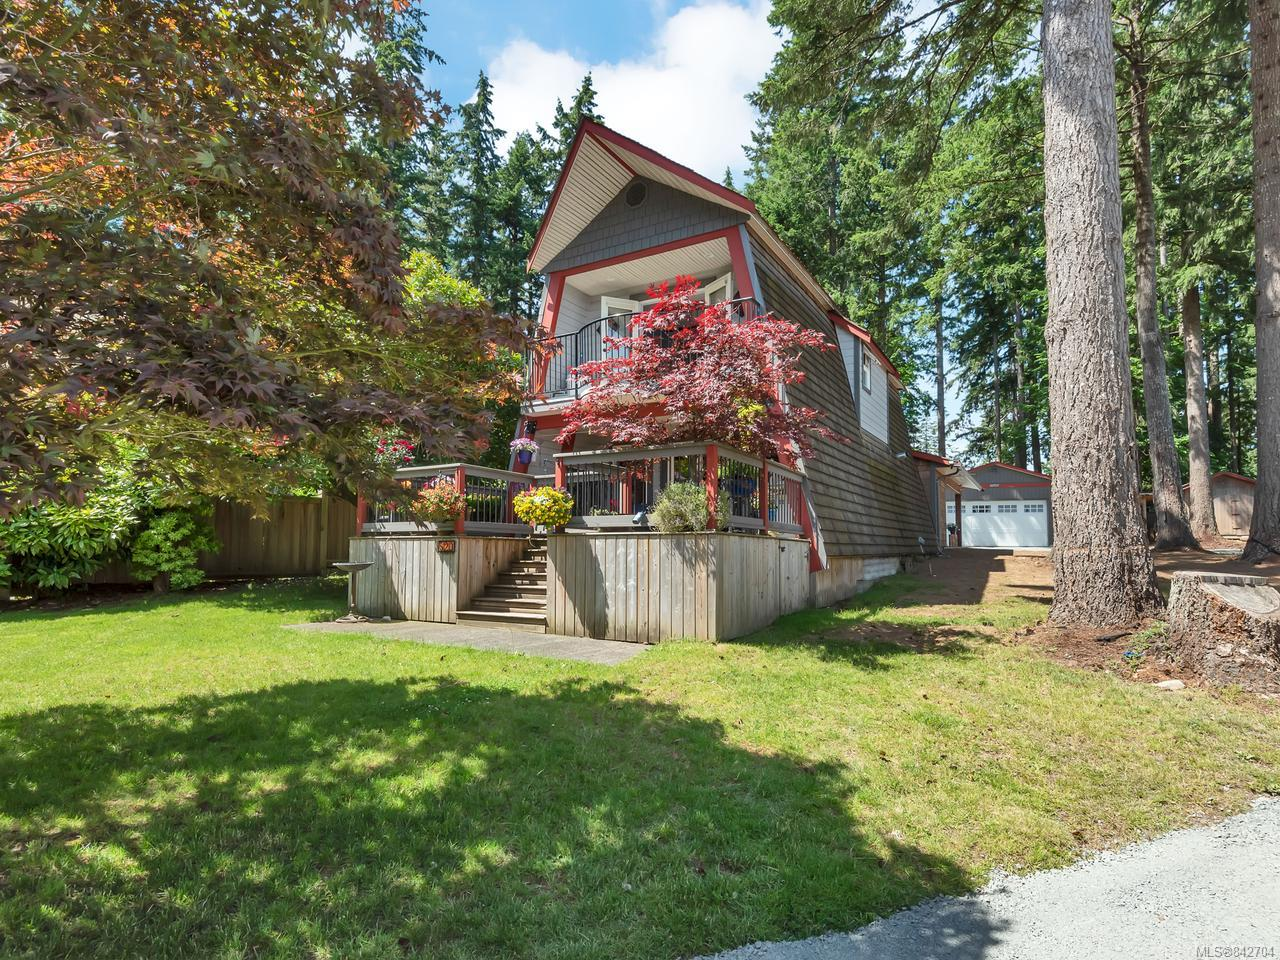 FEATURED LISTING: 520 Old Petersen Rd CAMPBELL RIVER